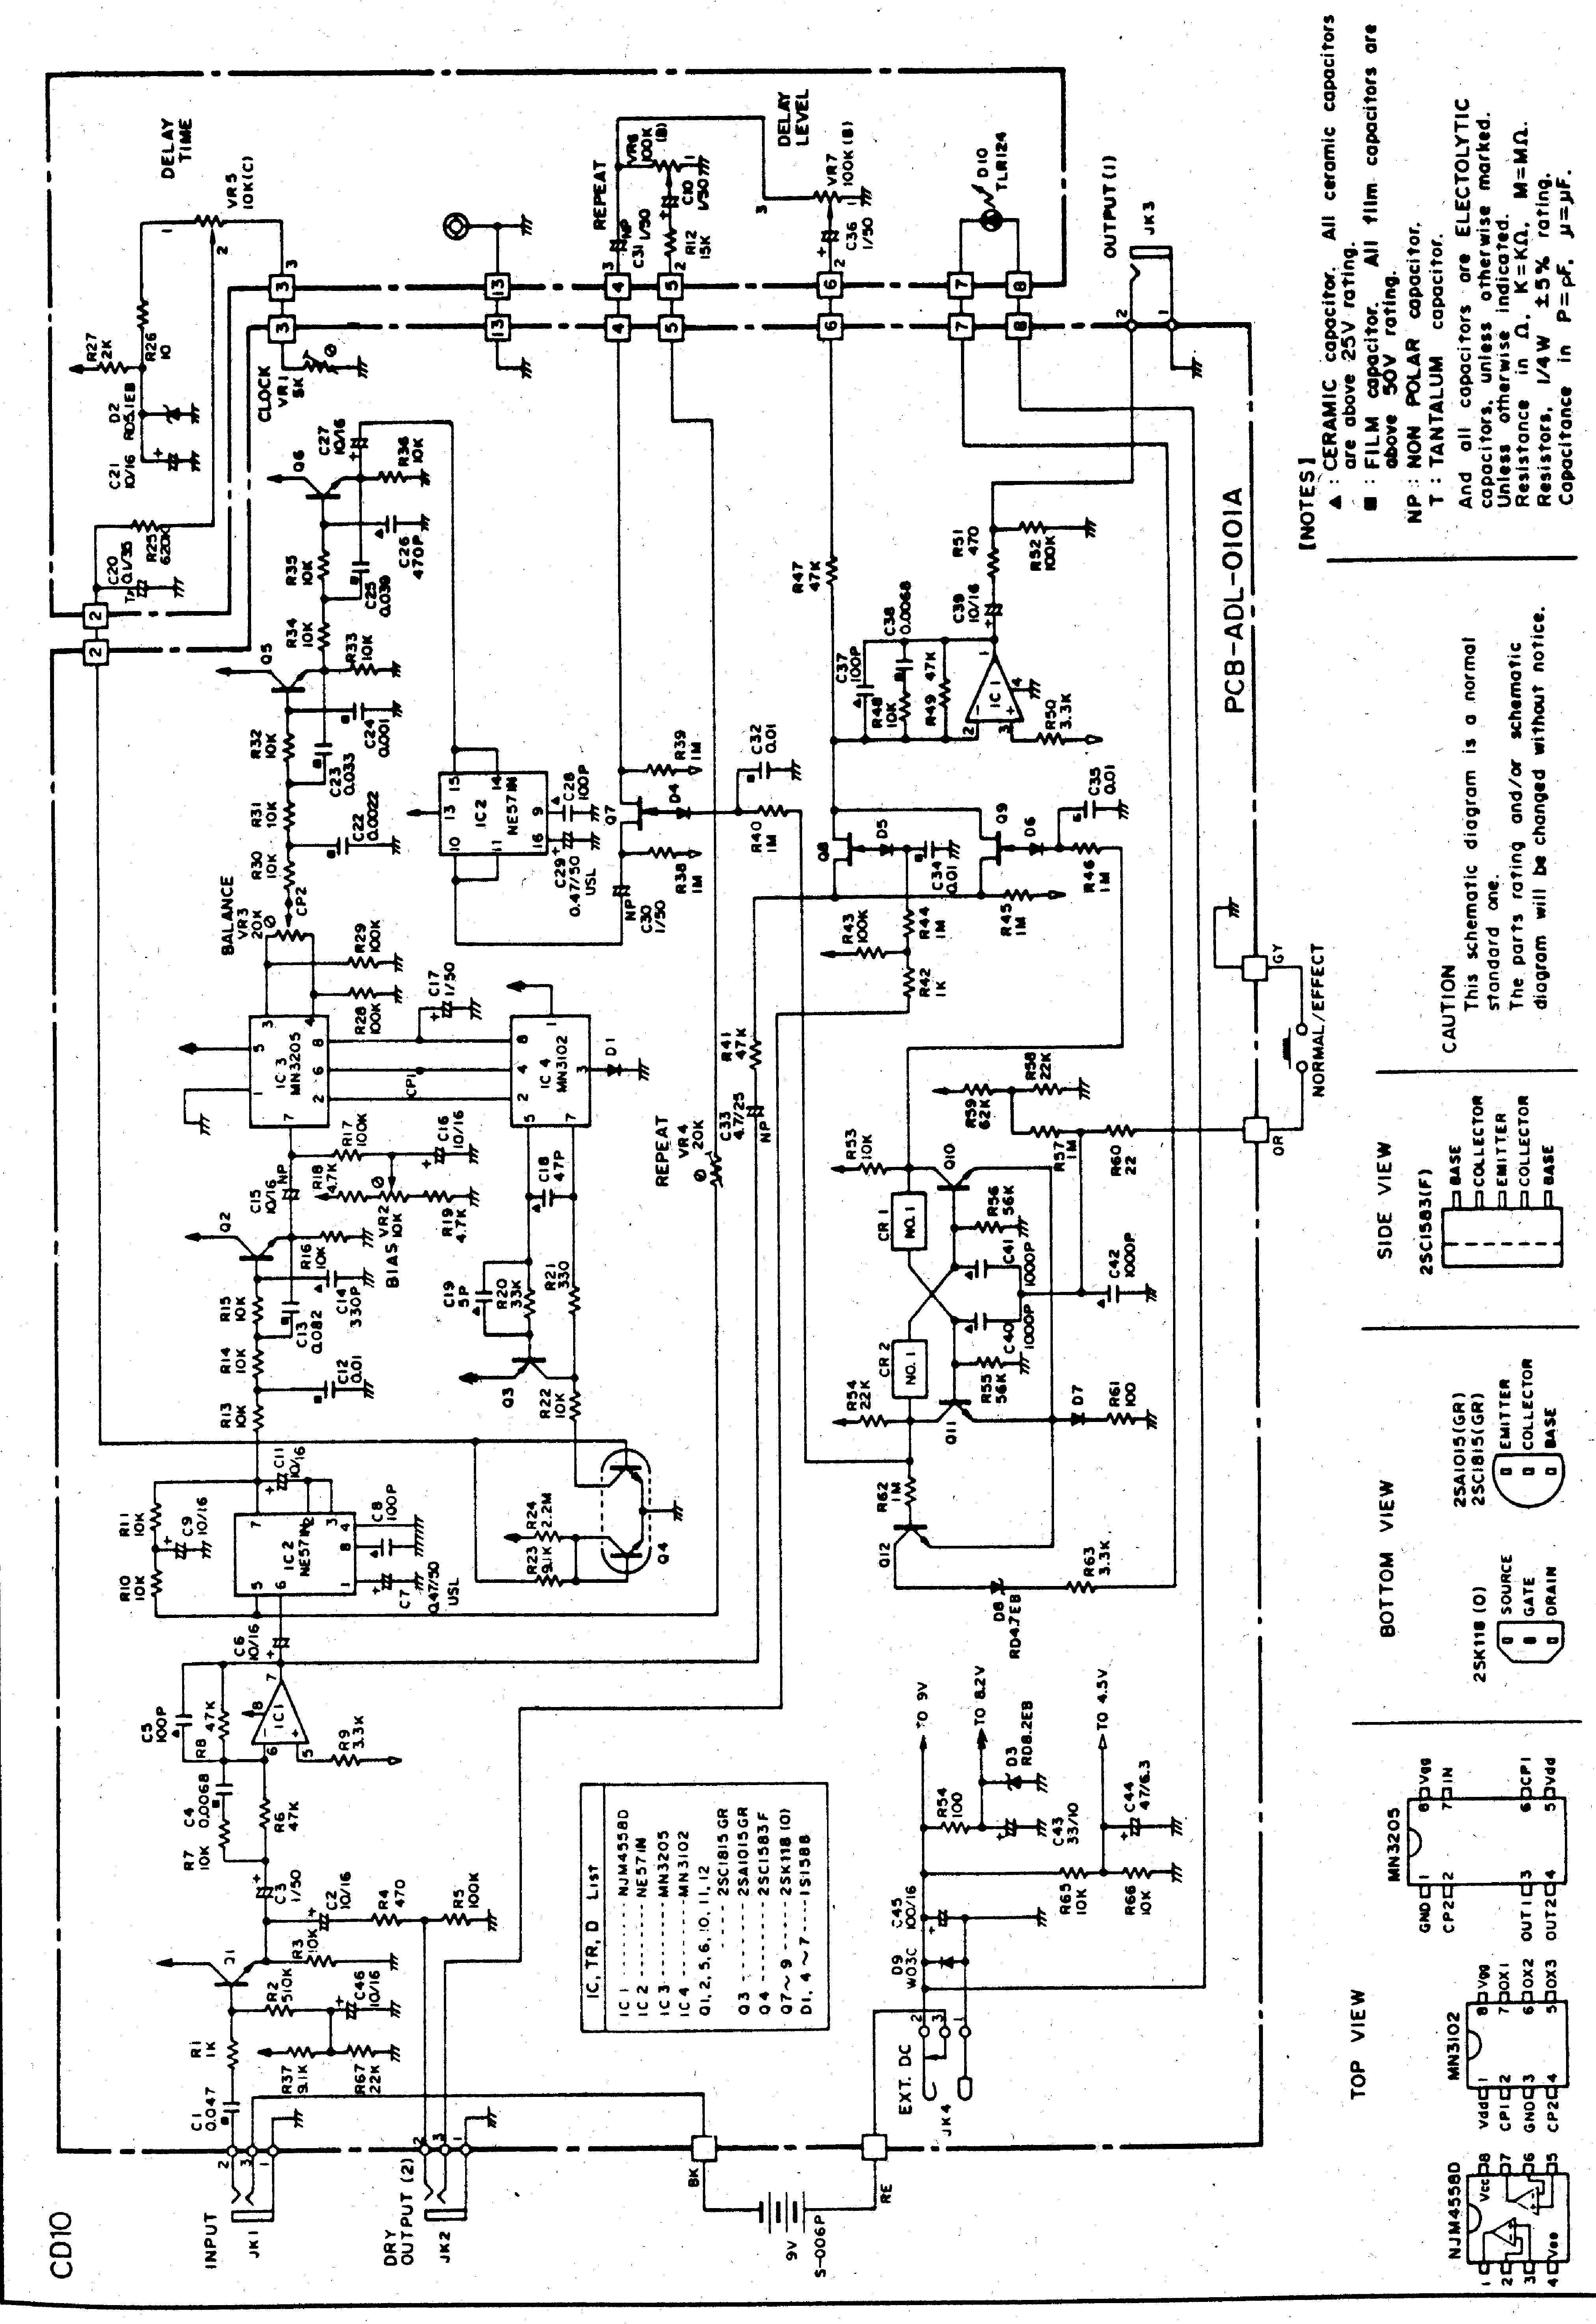 Ibanez Cd10 Sch Service Manual Download Schematics